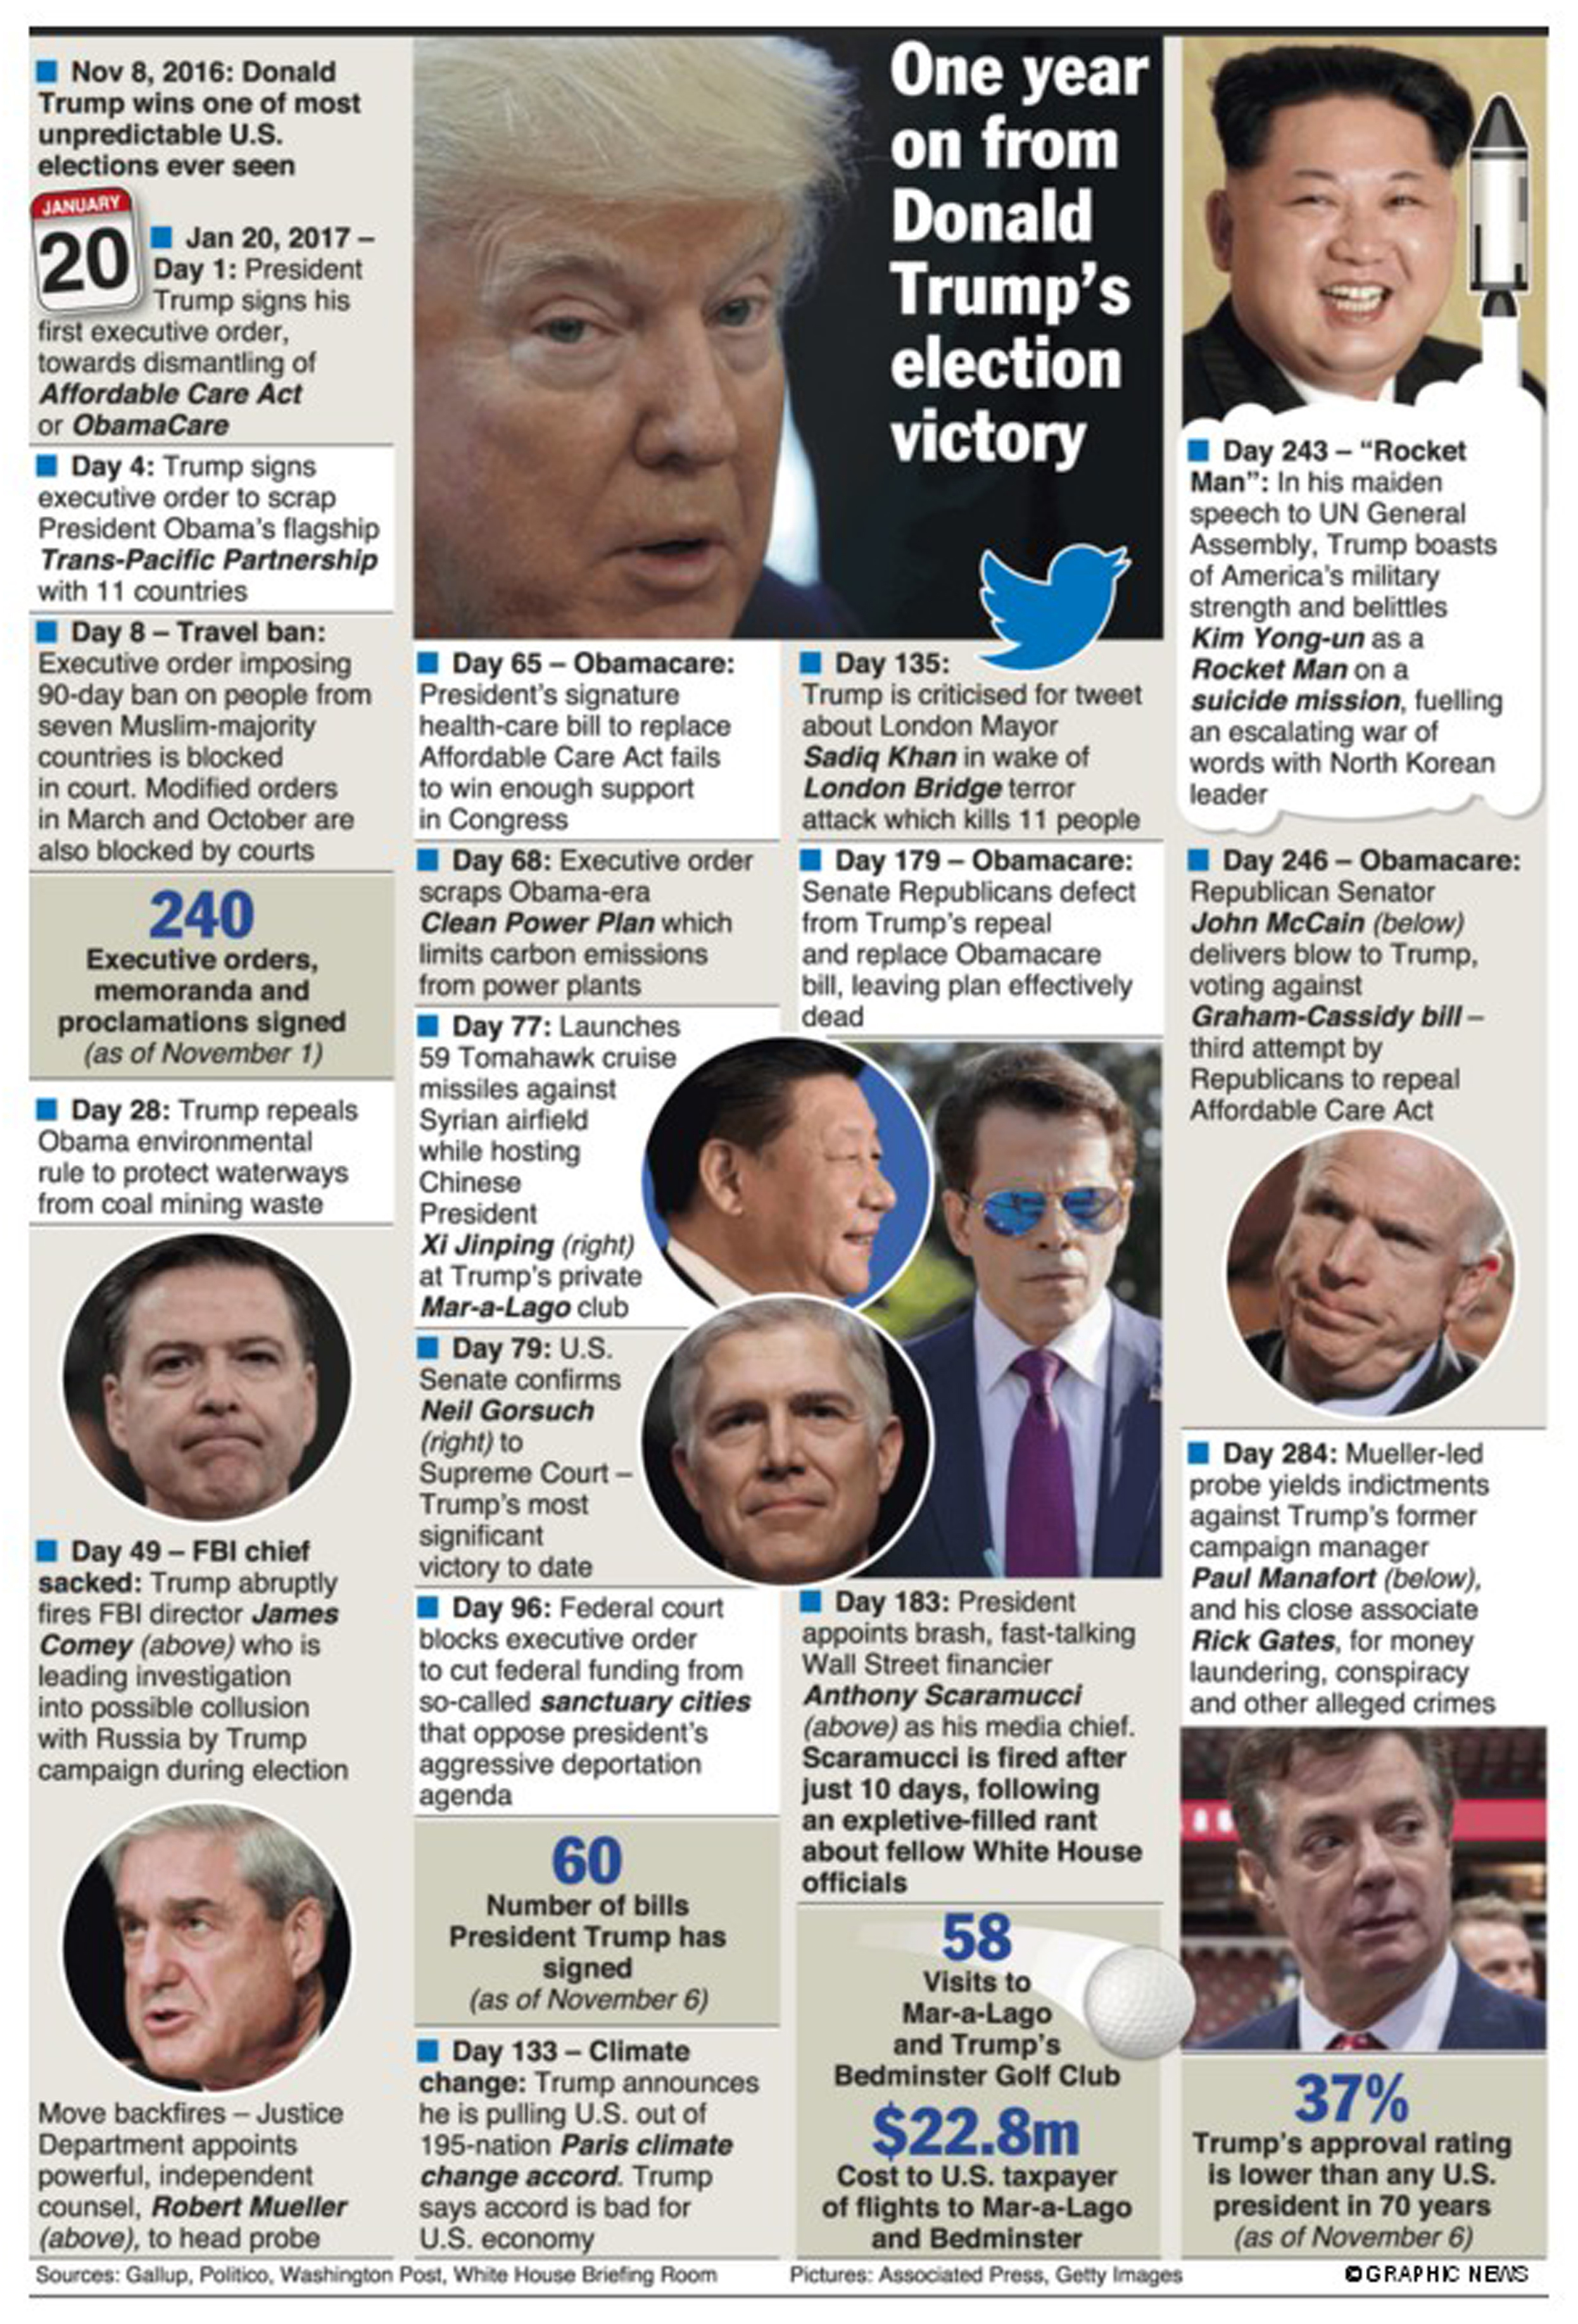 Infographics:  One year on from Donald Trump's election victory